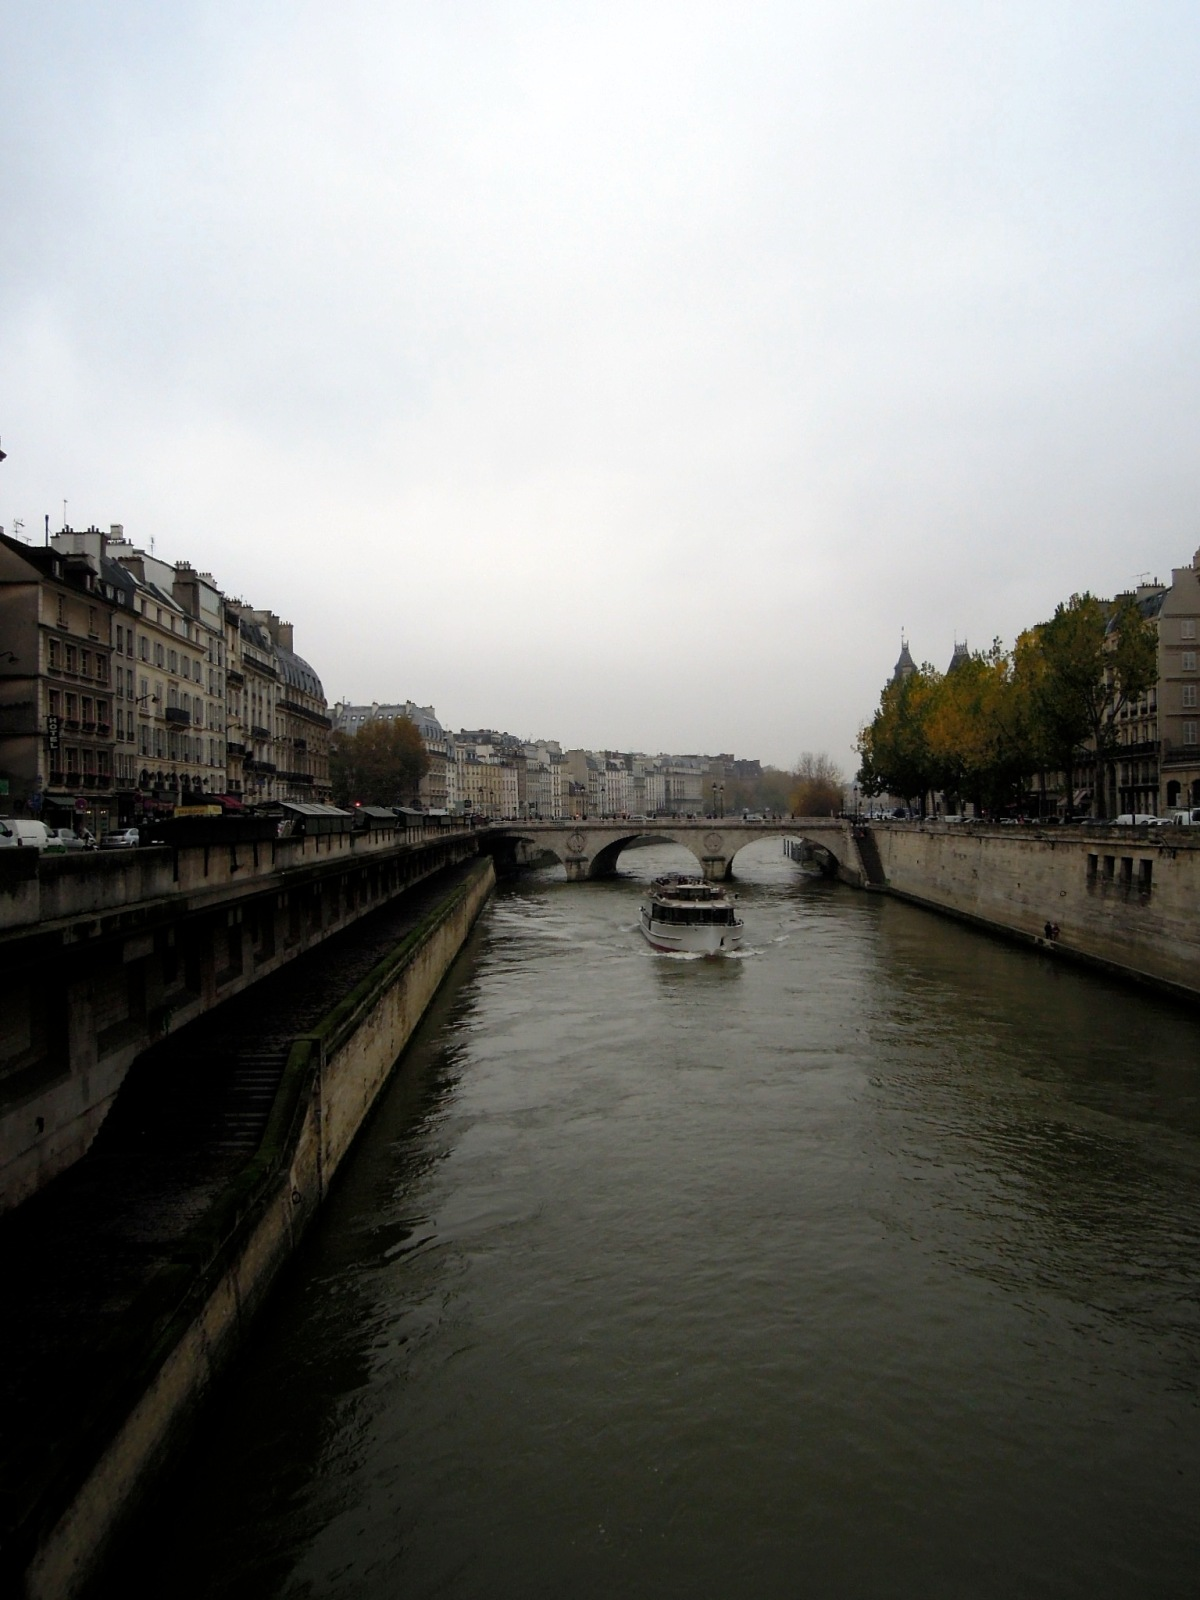 The Seine on an overcast, misty day